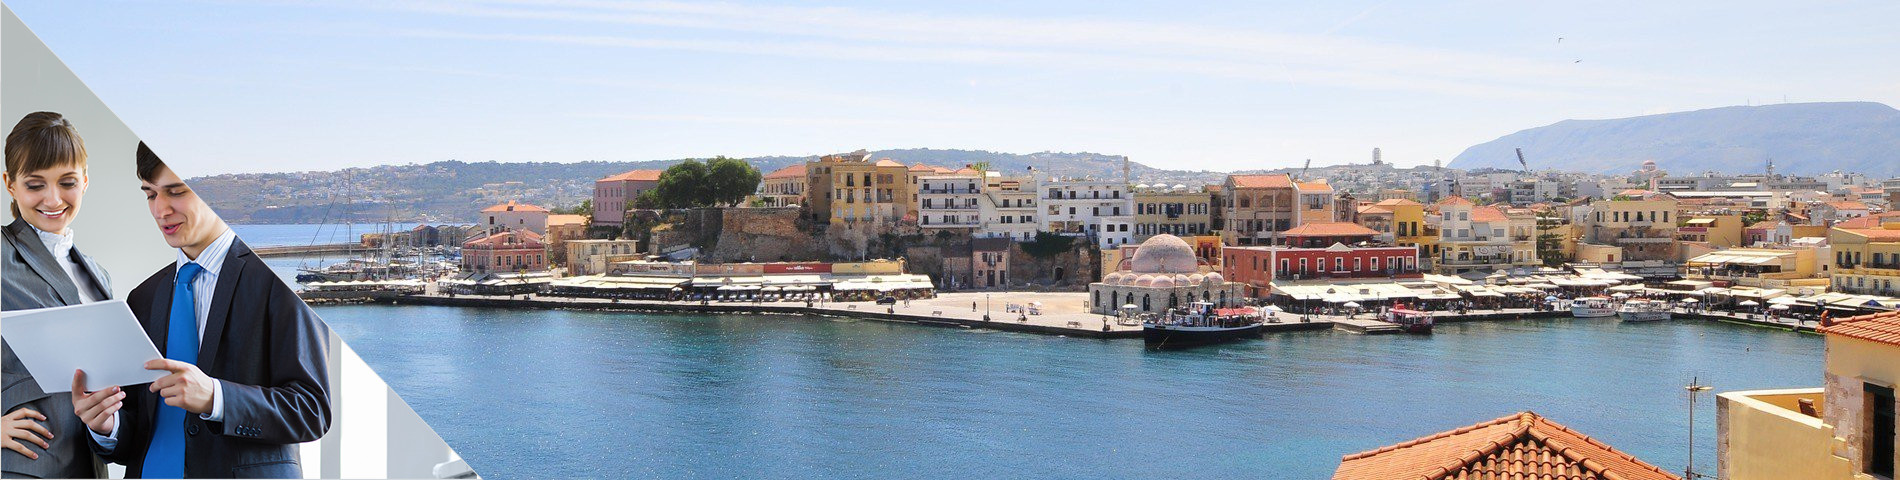 Chania (Crete) - Business One-to-One